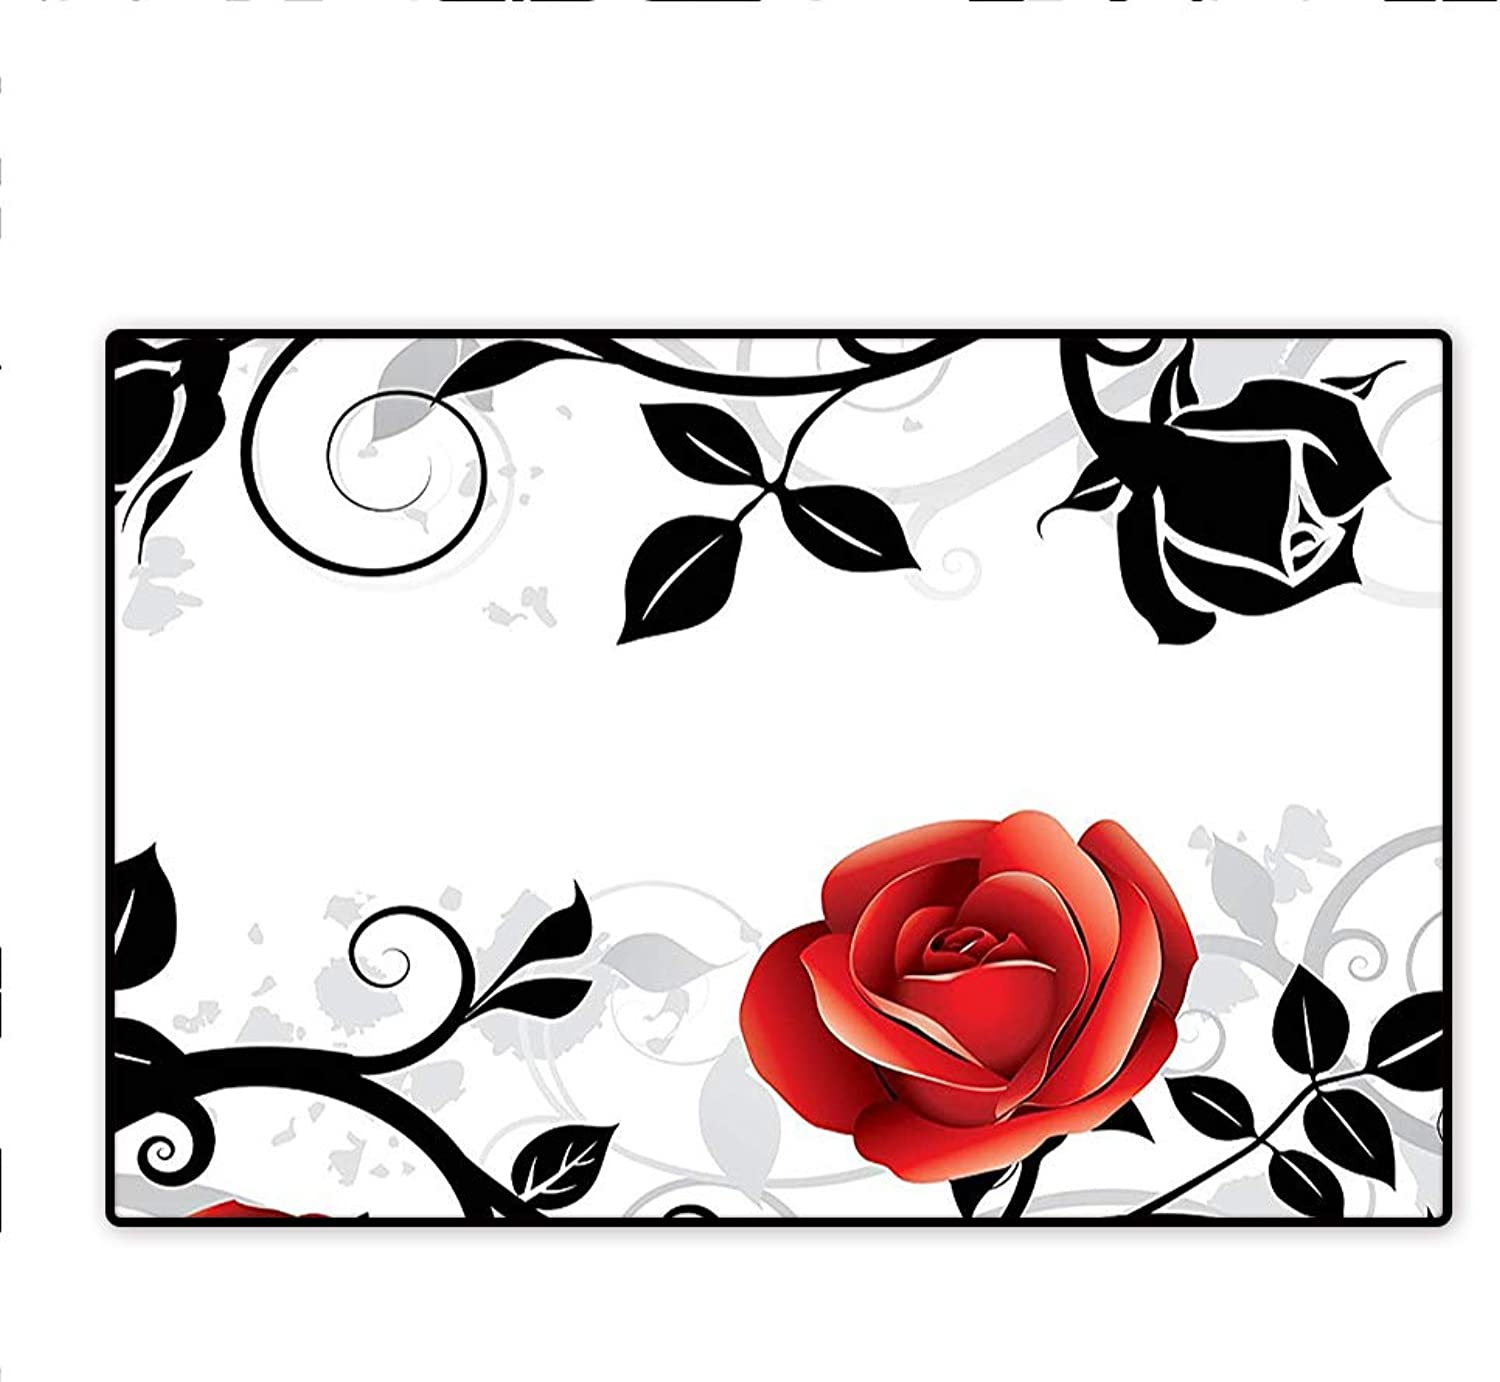 Doormats Stylized Hand Writing of Just Married on Pink Heart Tulip Flower Coral Black White Modern Home Decoration 5'x6'